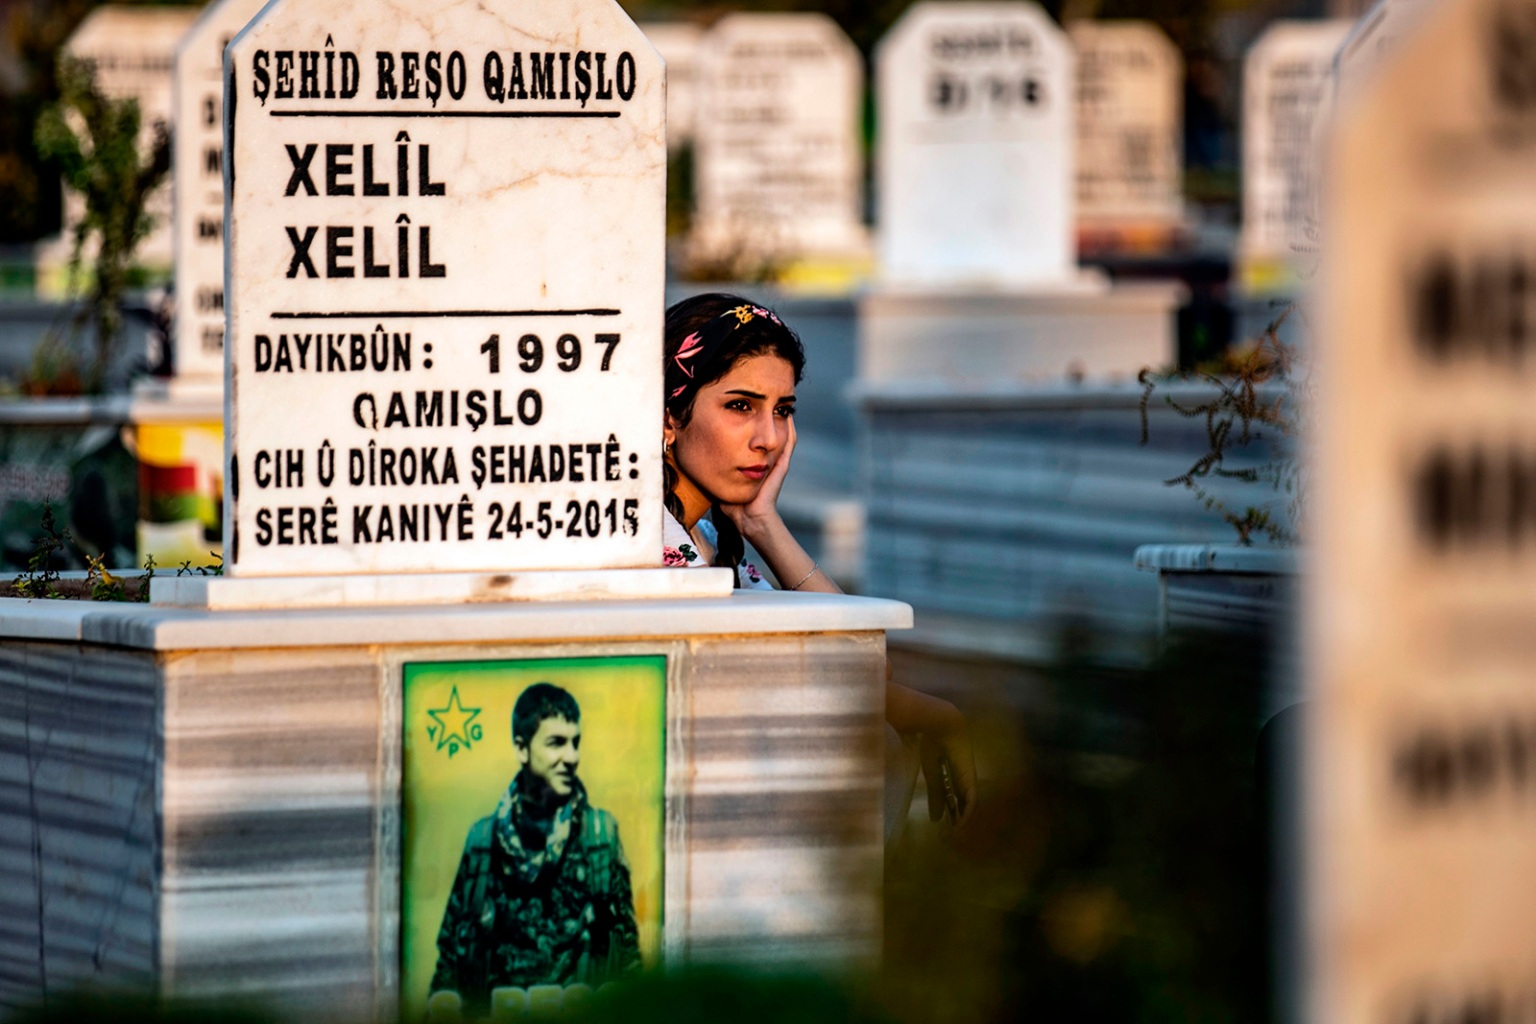 A Kurdish woman visits the grave of a relative during a funeral for a member of the Kurdish Internal Security Police Force in the northeastern Syrian Kurdish-majority city of Qamishli on Aug. 20. DELIL SOULEIMAN/AFP/Getty Images